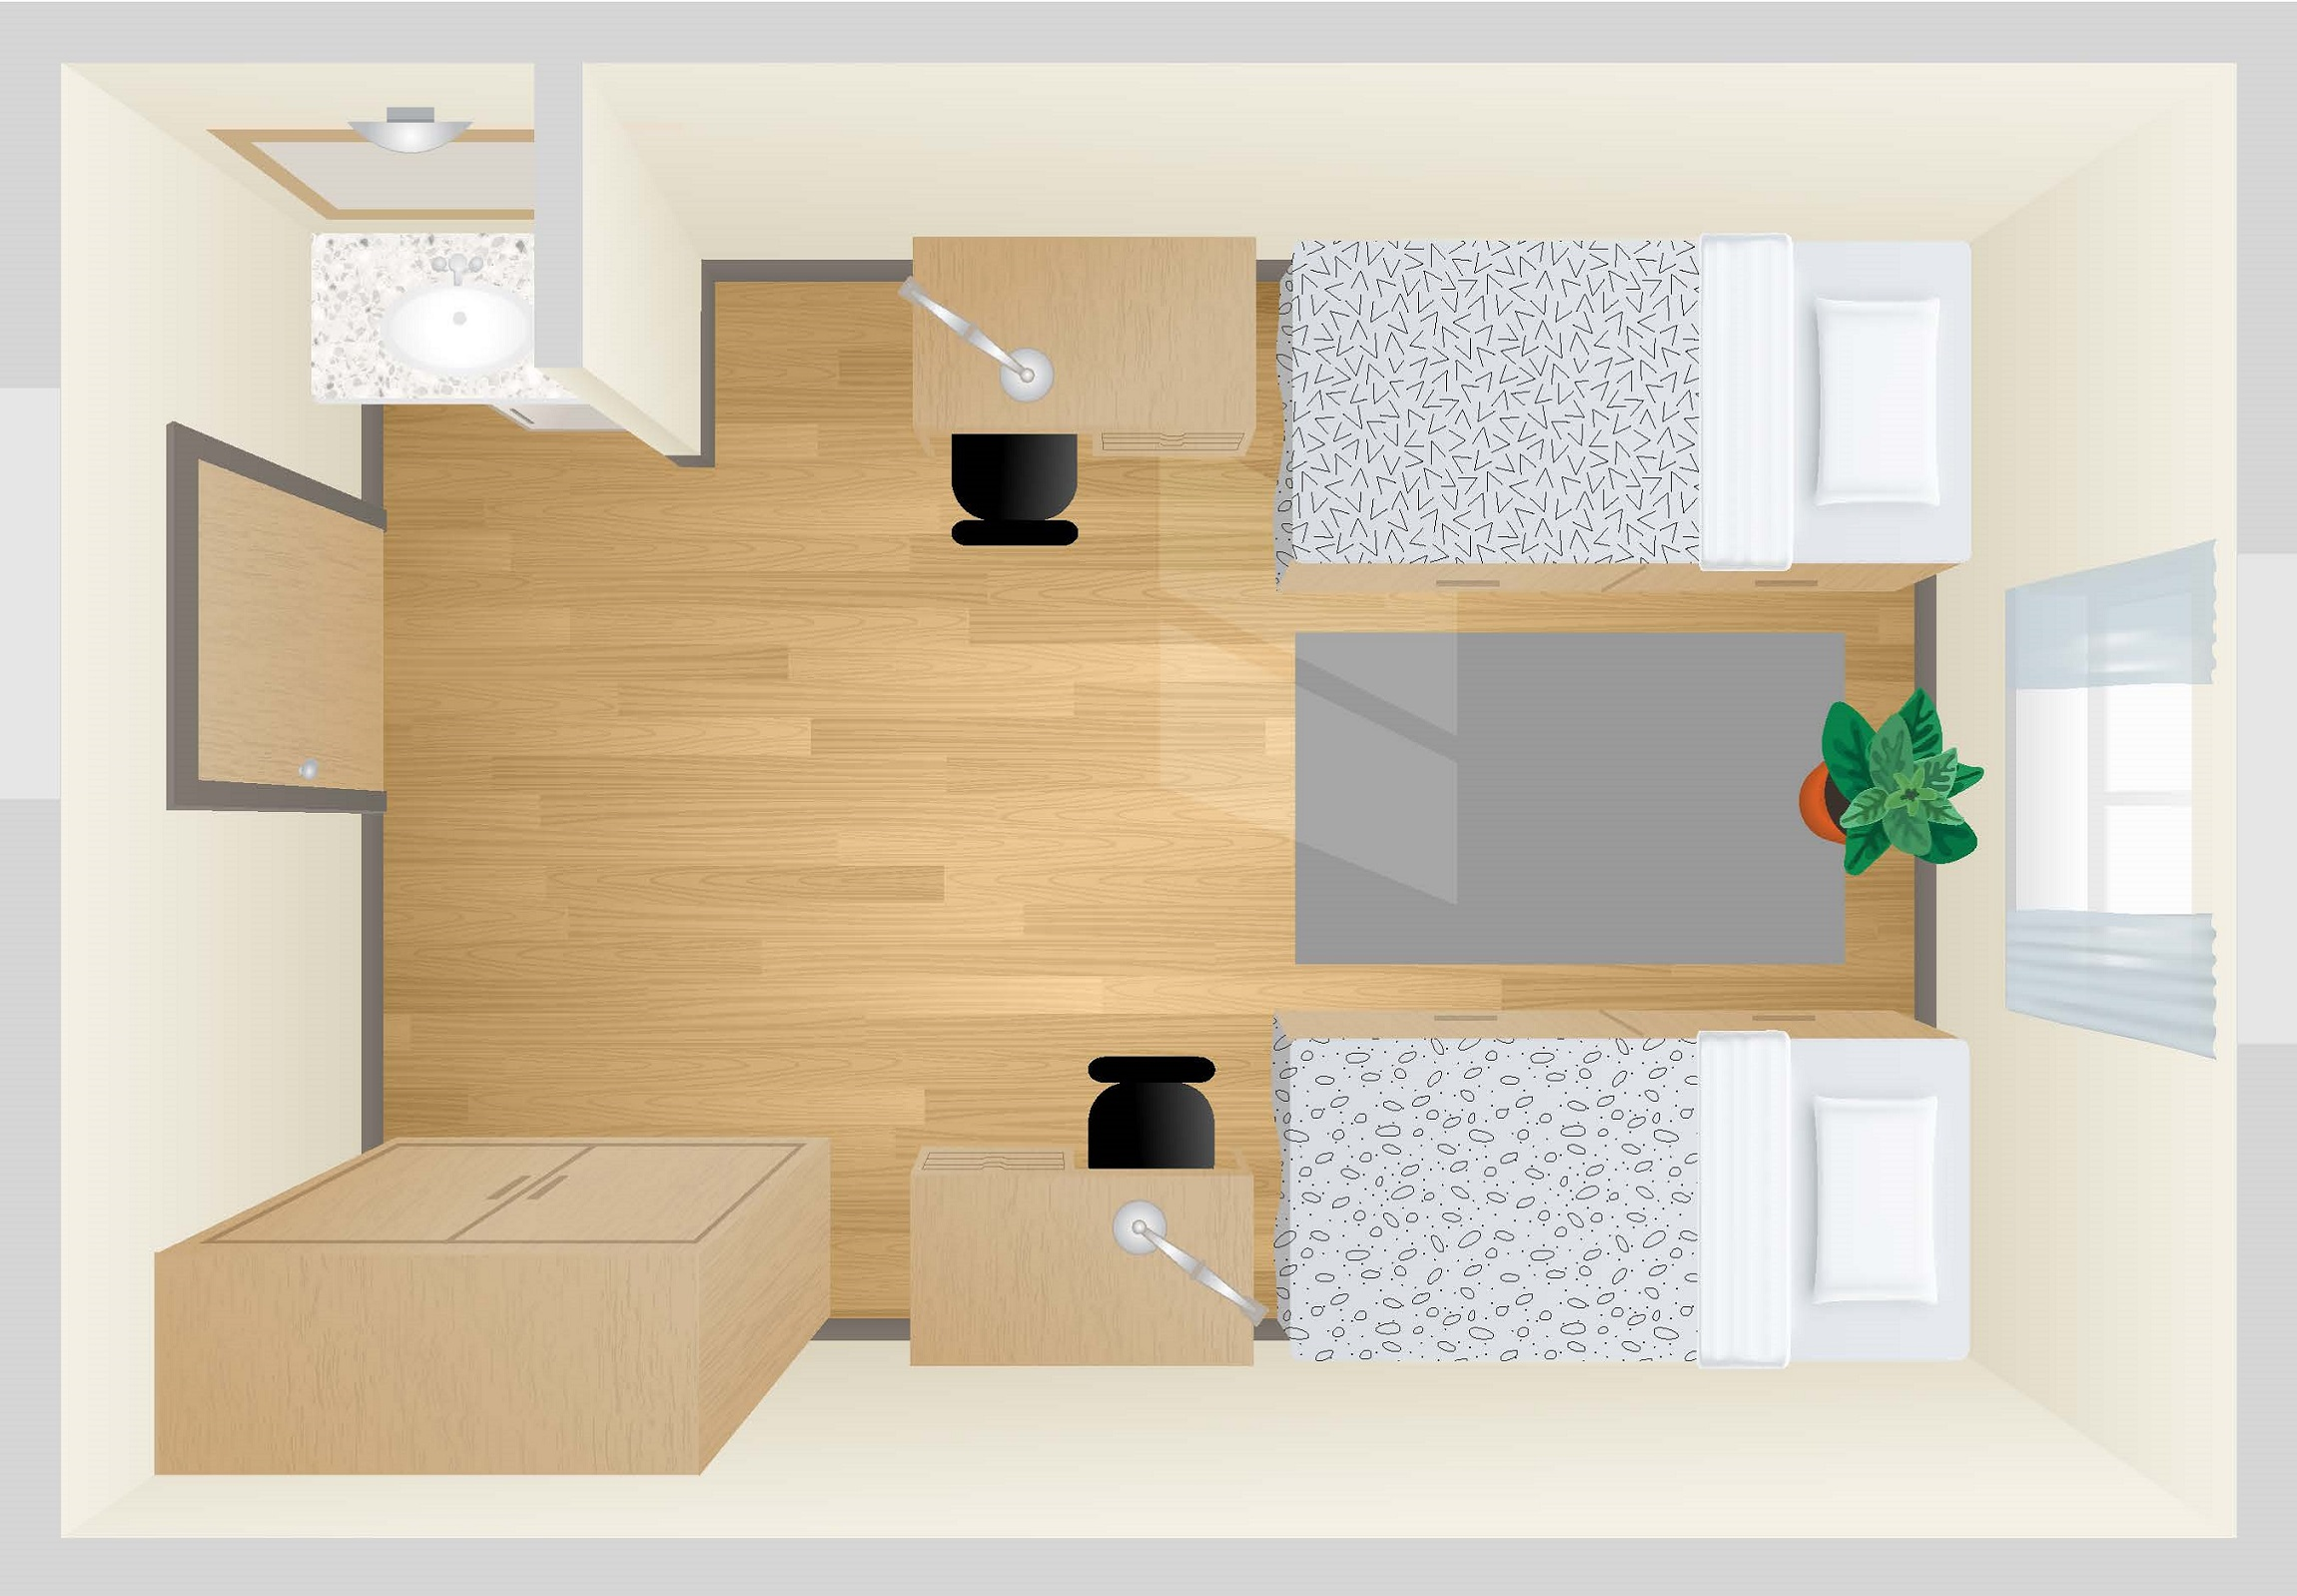 Image of plan view of a room